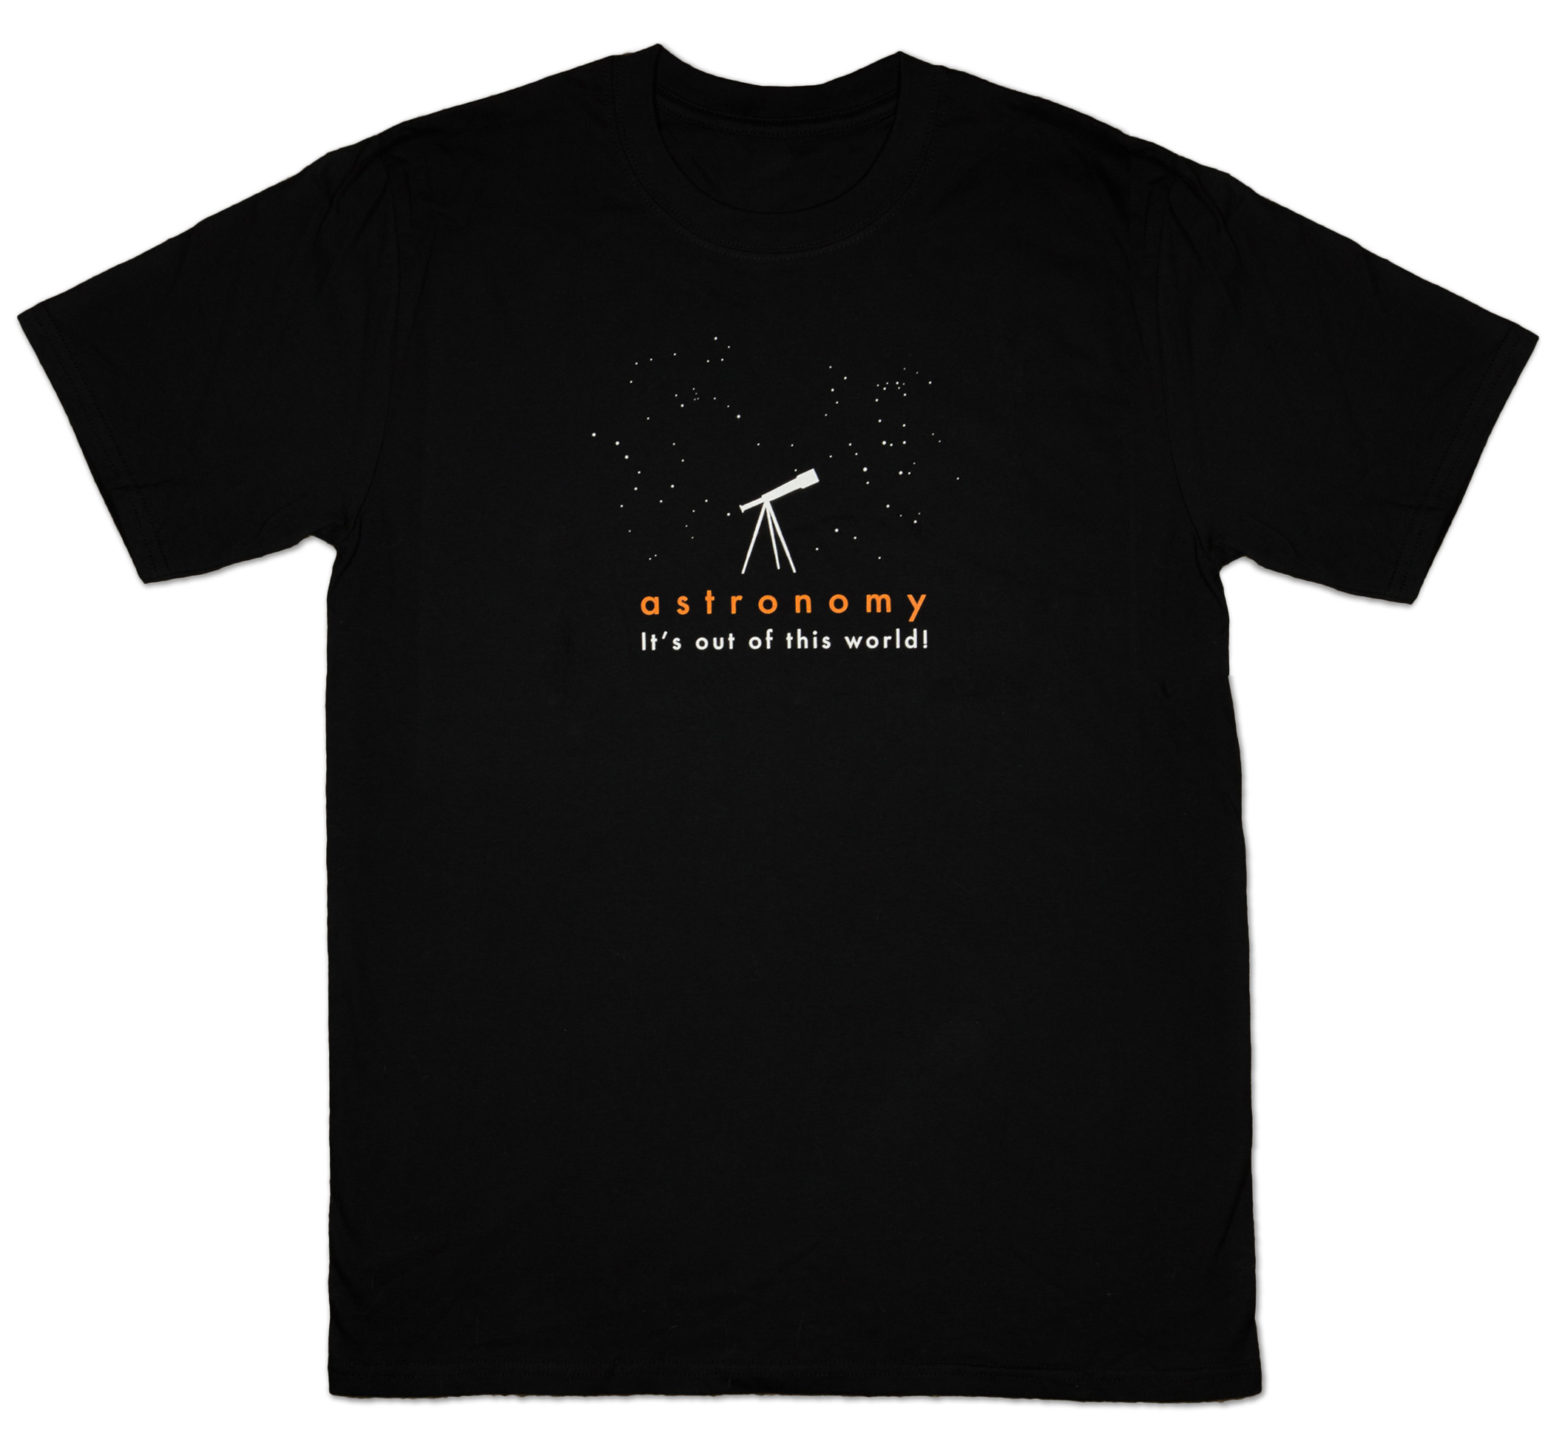 T-shirt: Astronomy – It's out of this world!